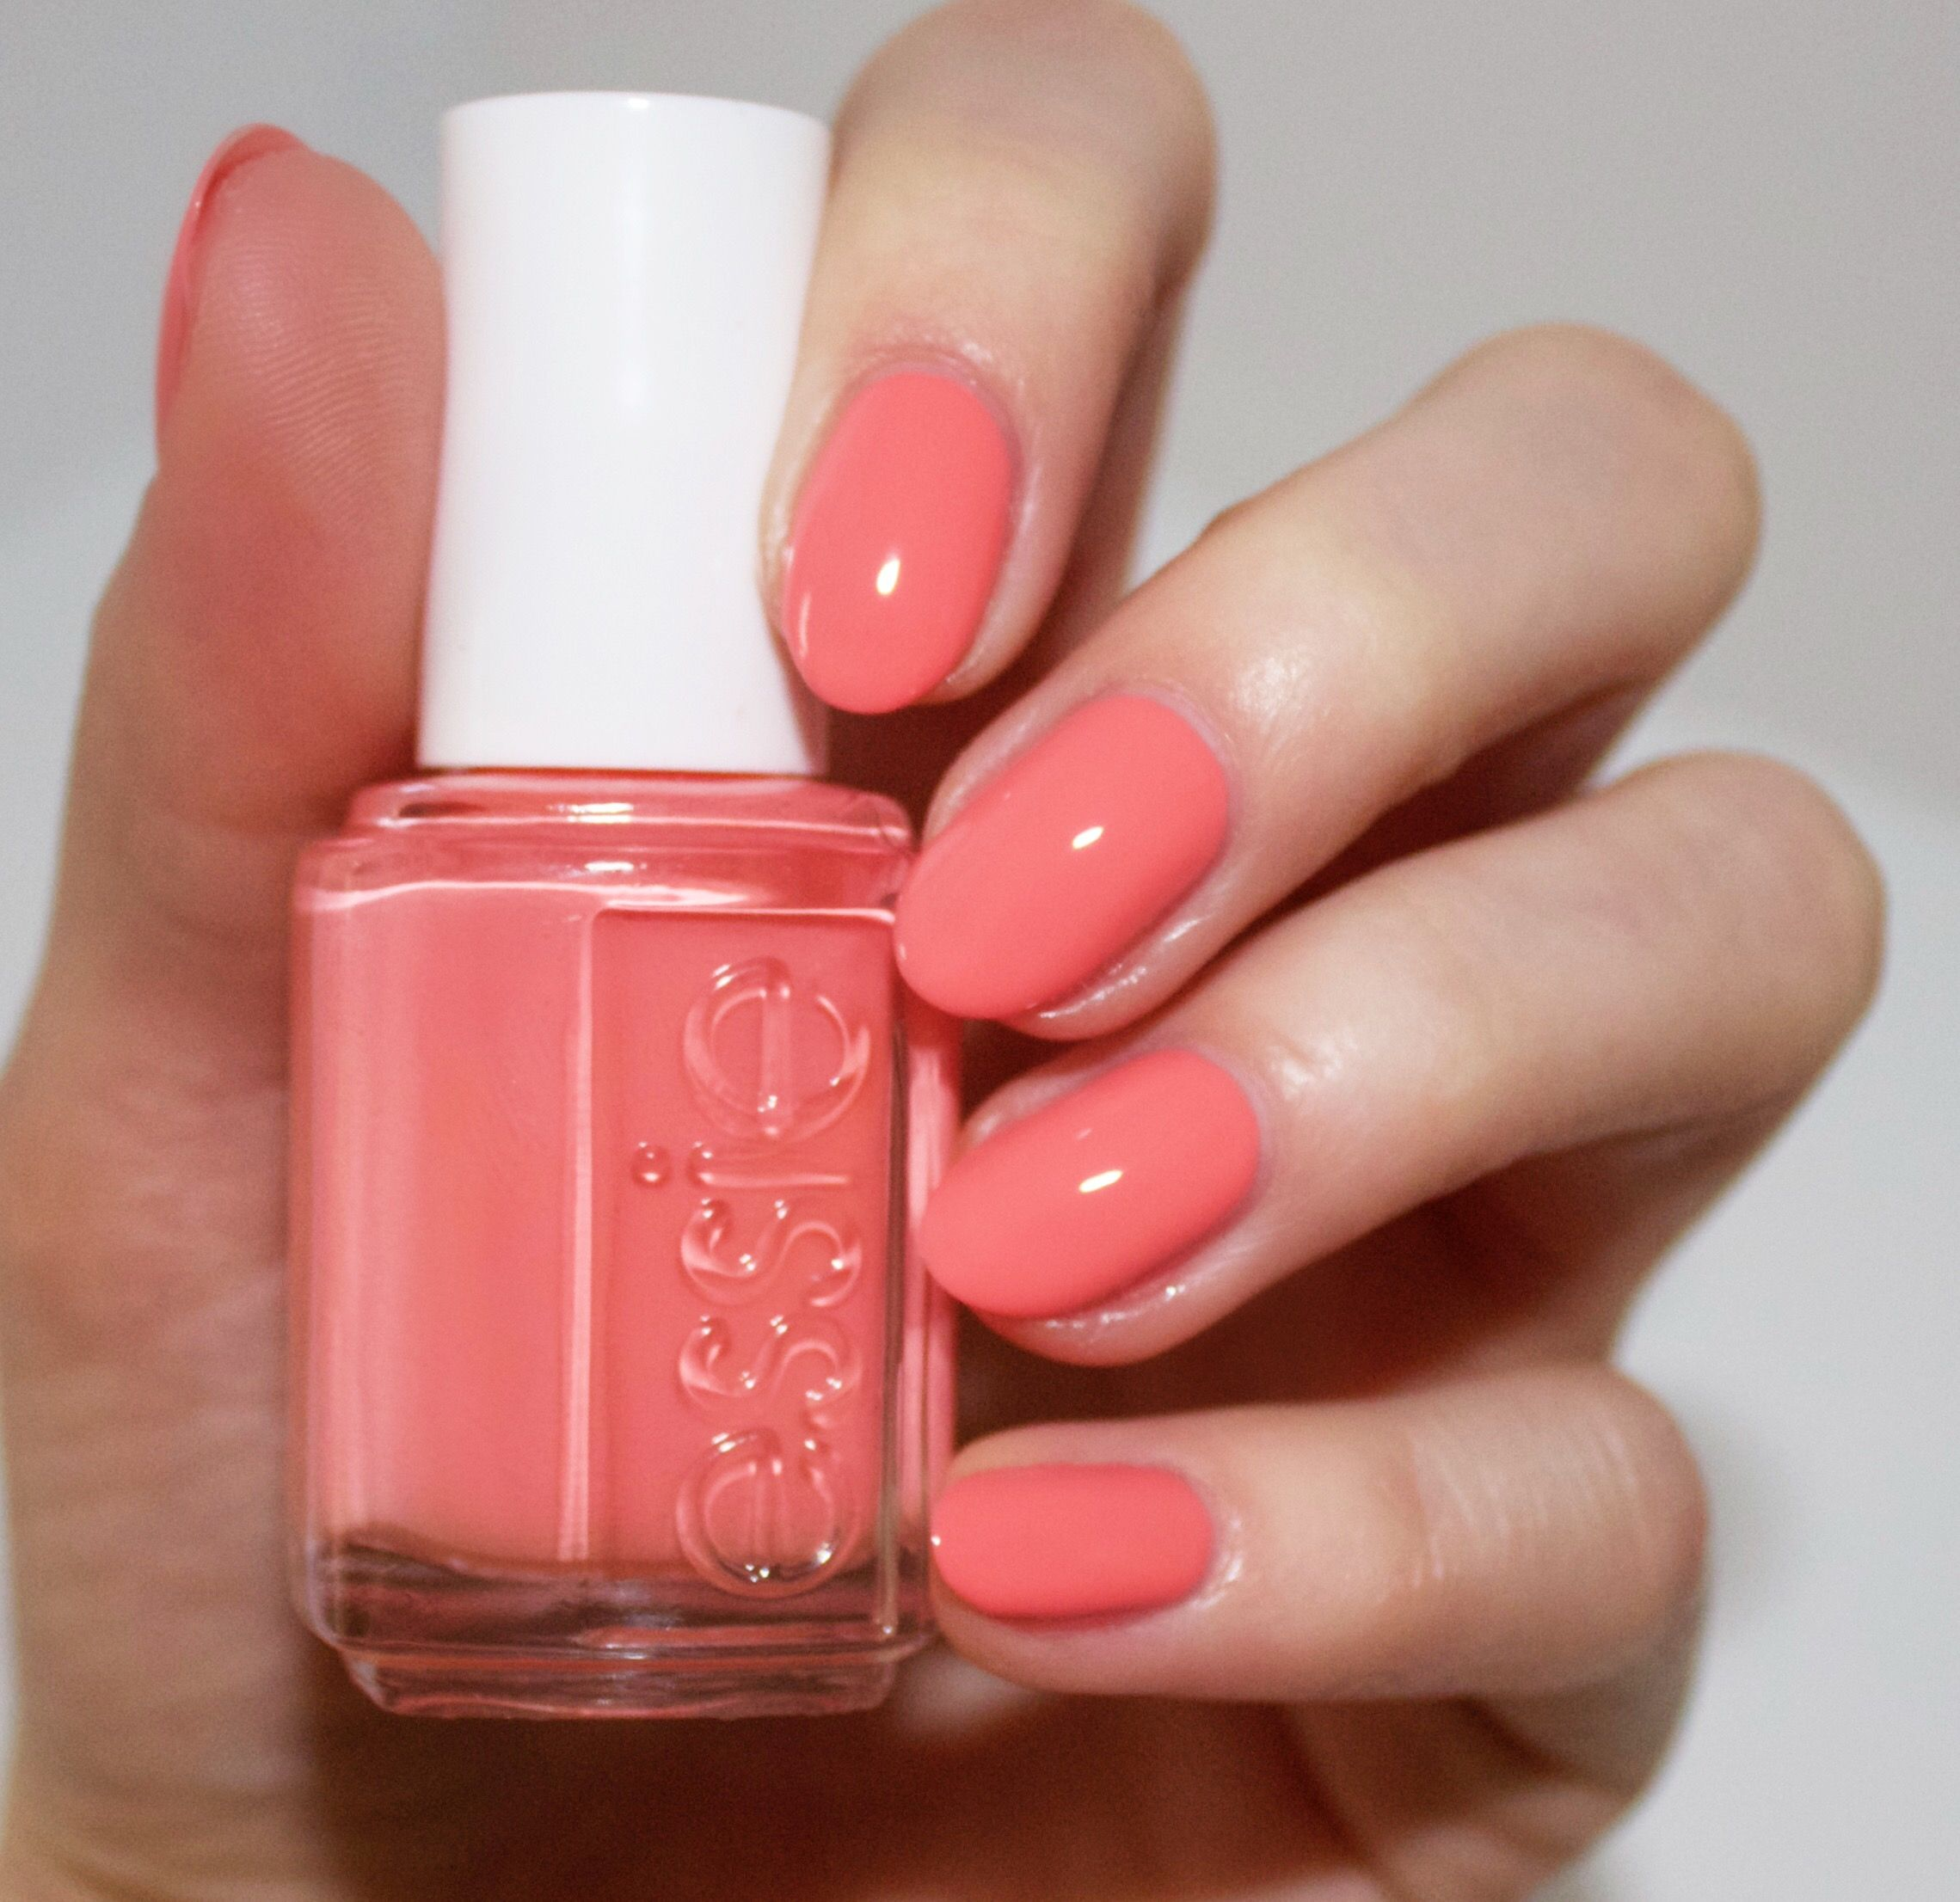 Essie spring 2016 collection - lounge lover - pretty peach pink ...